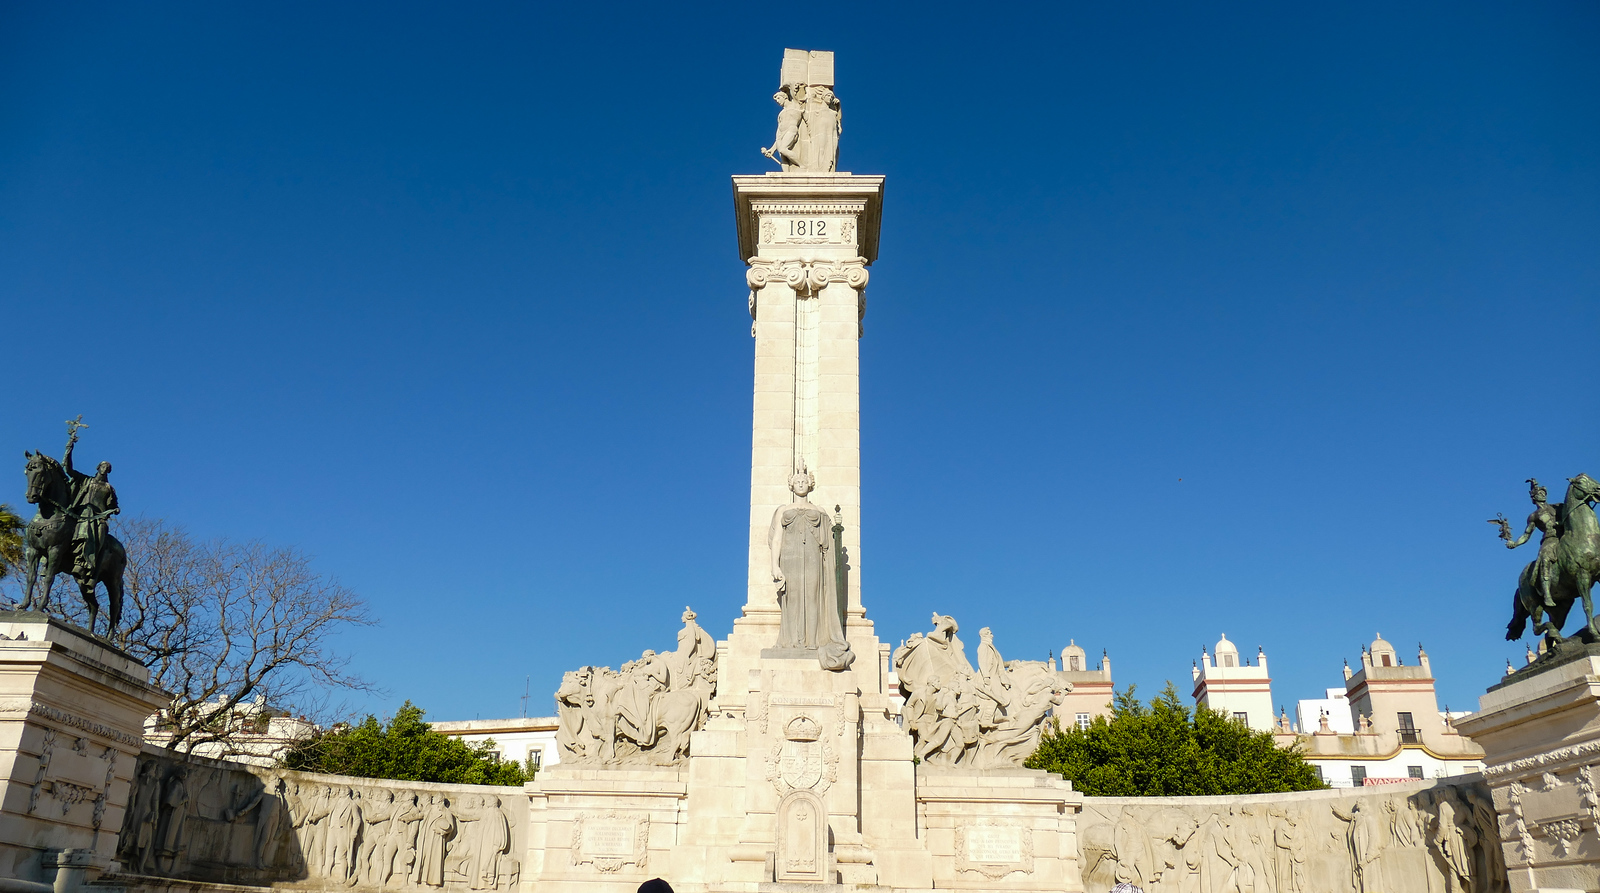 In Cadiz, Spain, the Monumento a la Constitution commemorates the signing of the first Spanish constitution.